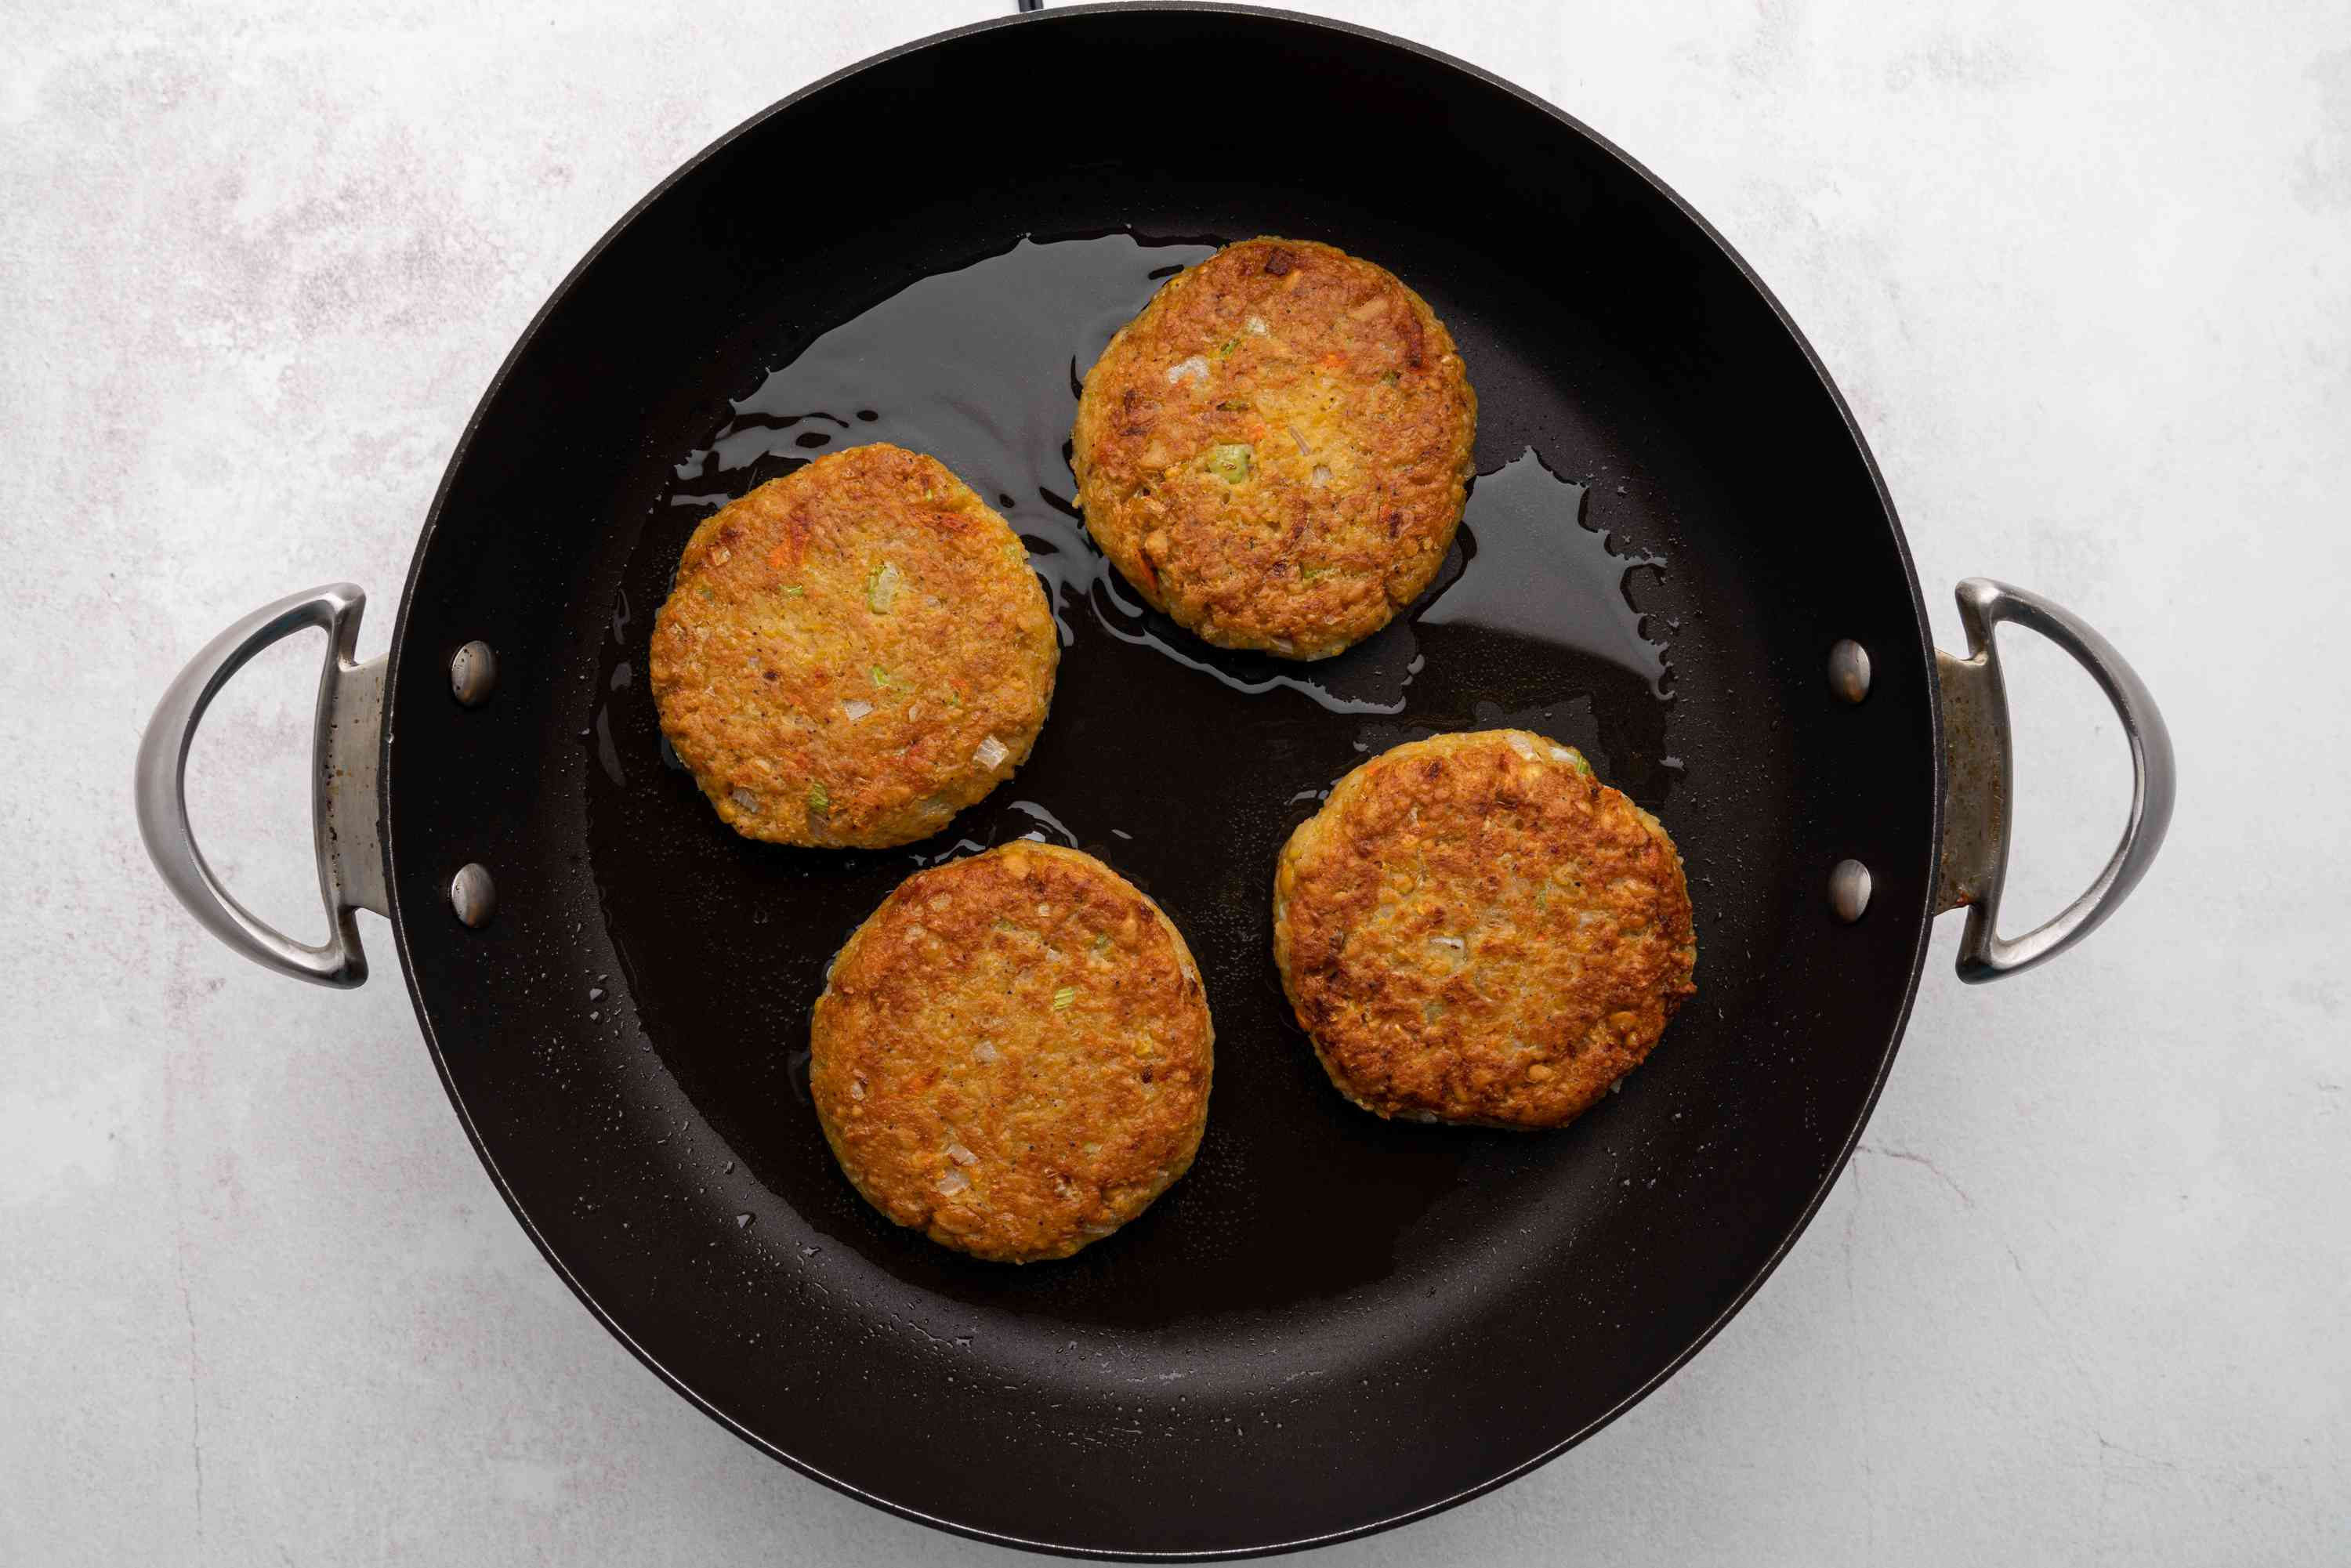 chickpea patties frying in a skillet